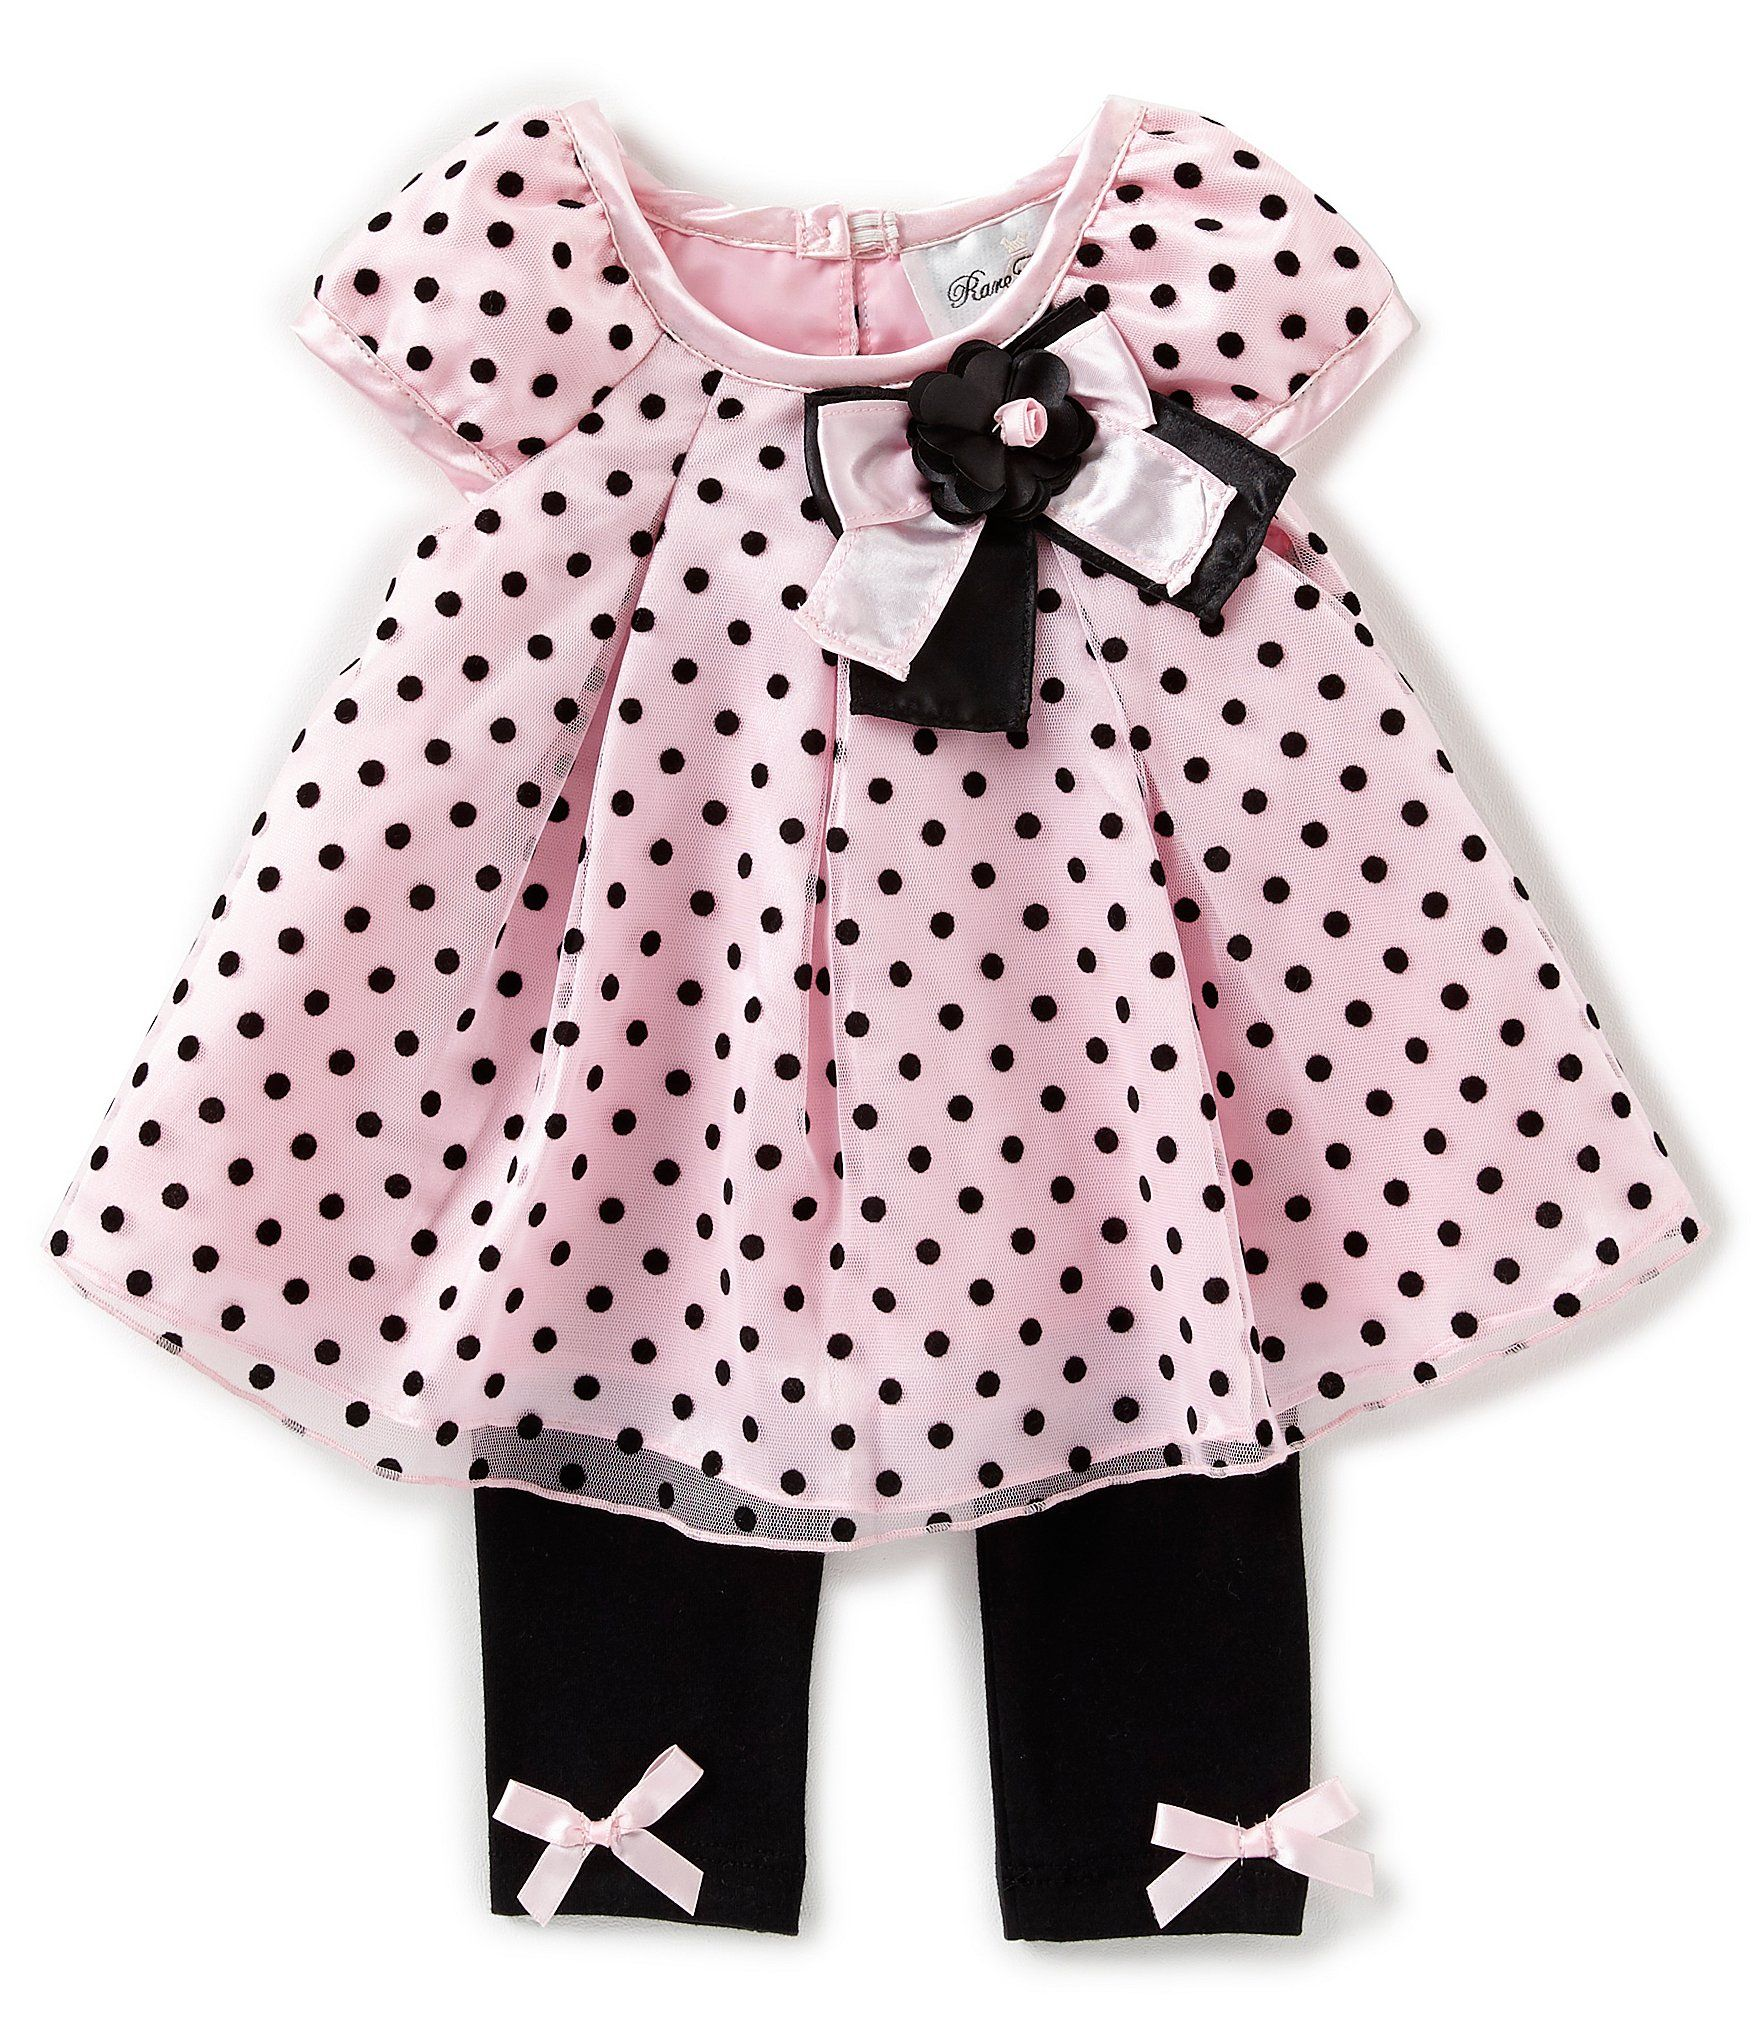 Baby Girls Outfit Leggings Top Set Newborn to 18-24 months /'Pretty and Perfect/'